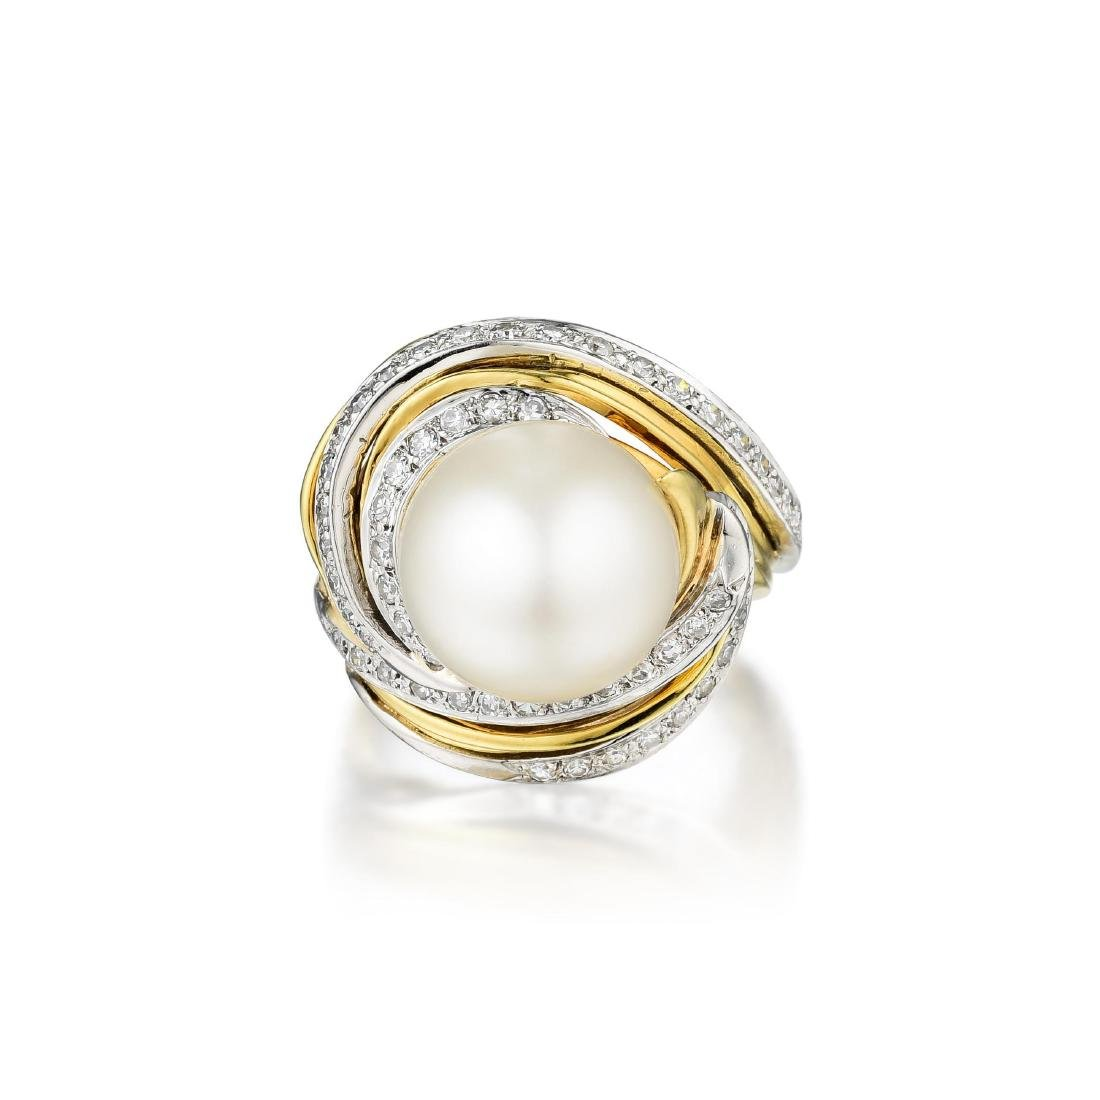 An 18K Gold South Sea Pearl and Diamond Ring